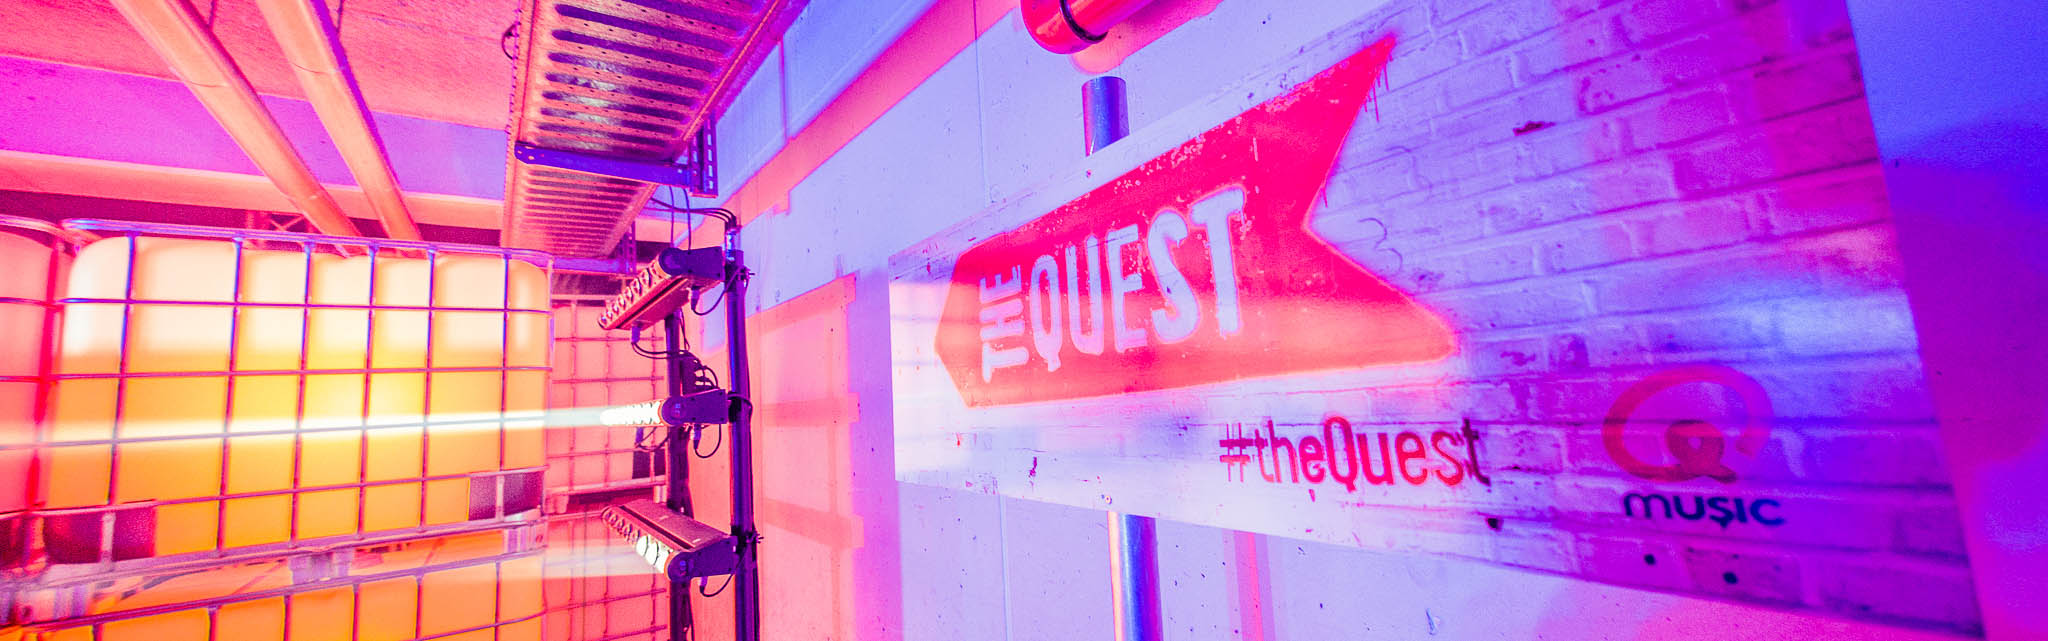 Header qmusic   the quest   netsky   antwerpen   mercado   robinderaedt 006